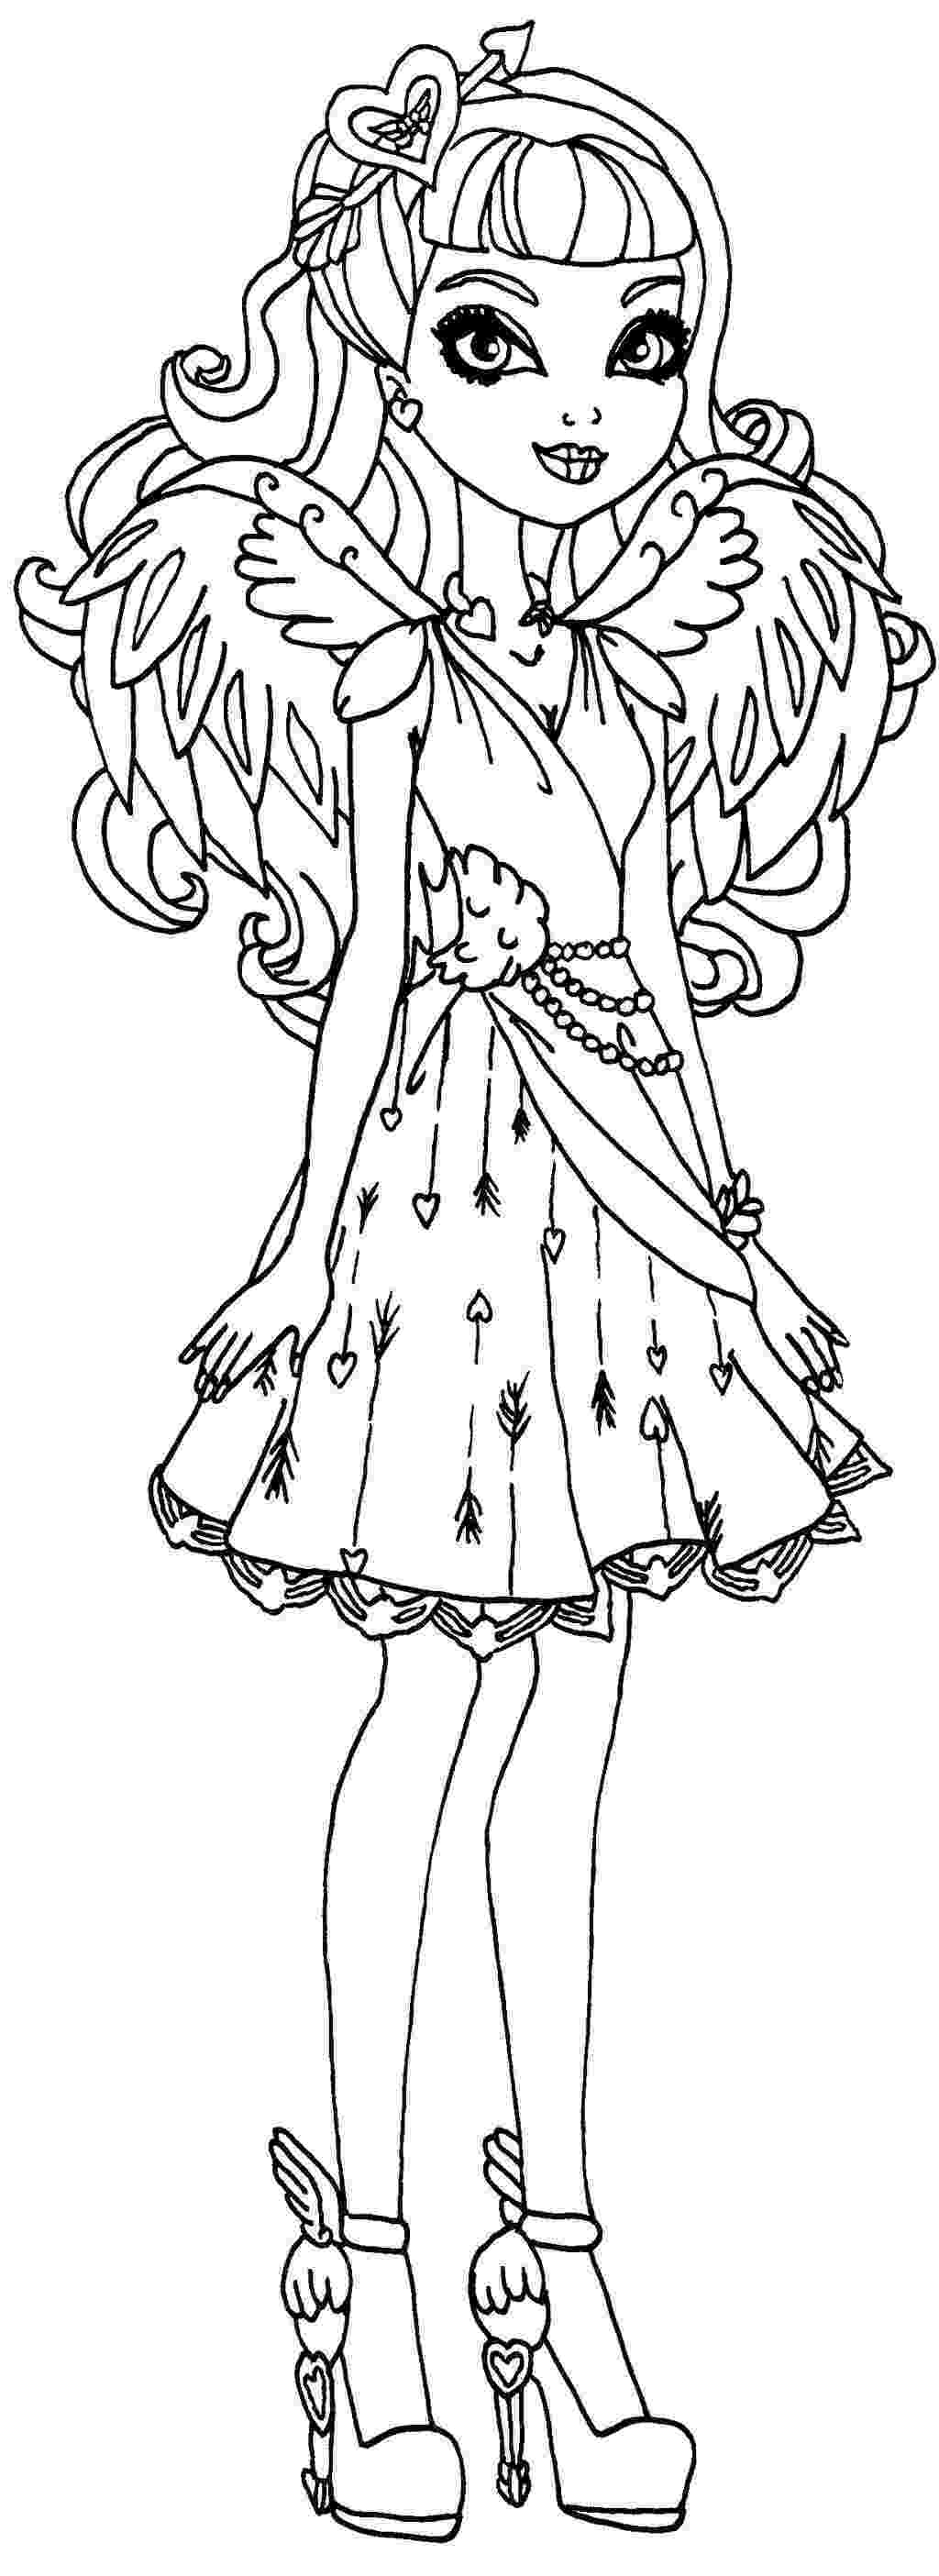 girl coloring books cute girl coloring pages to download and print for free books coloring girl